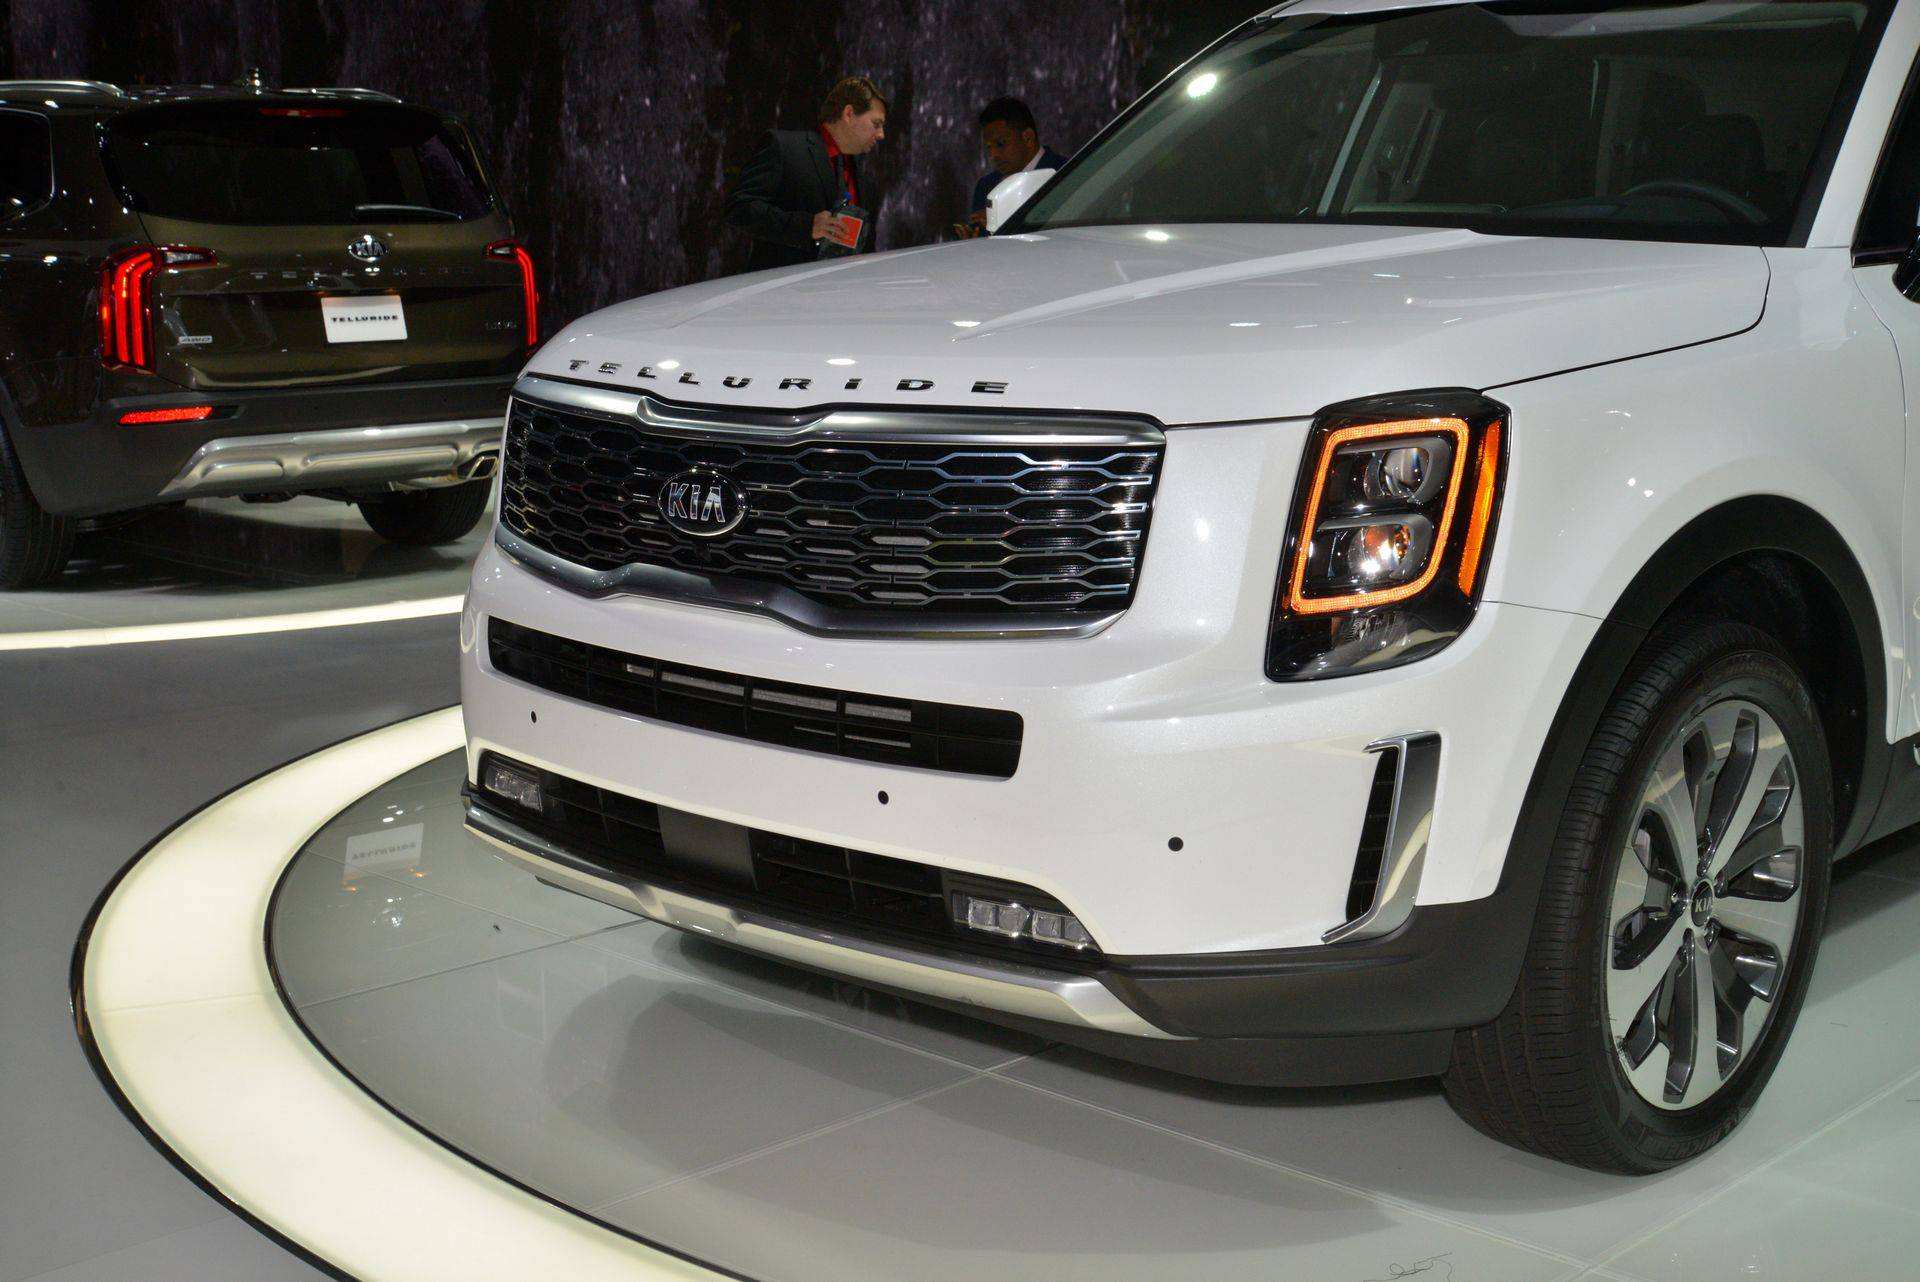 60 Best Review 2020 Kia Telluride Build And Price Wallpaper with 1920x1282